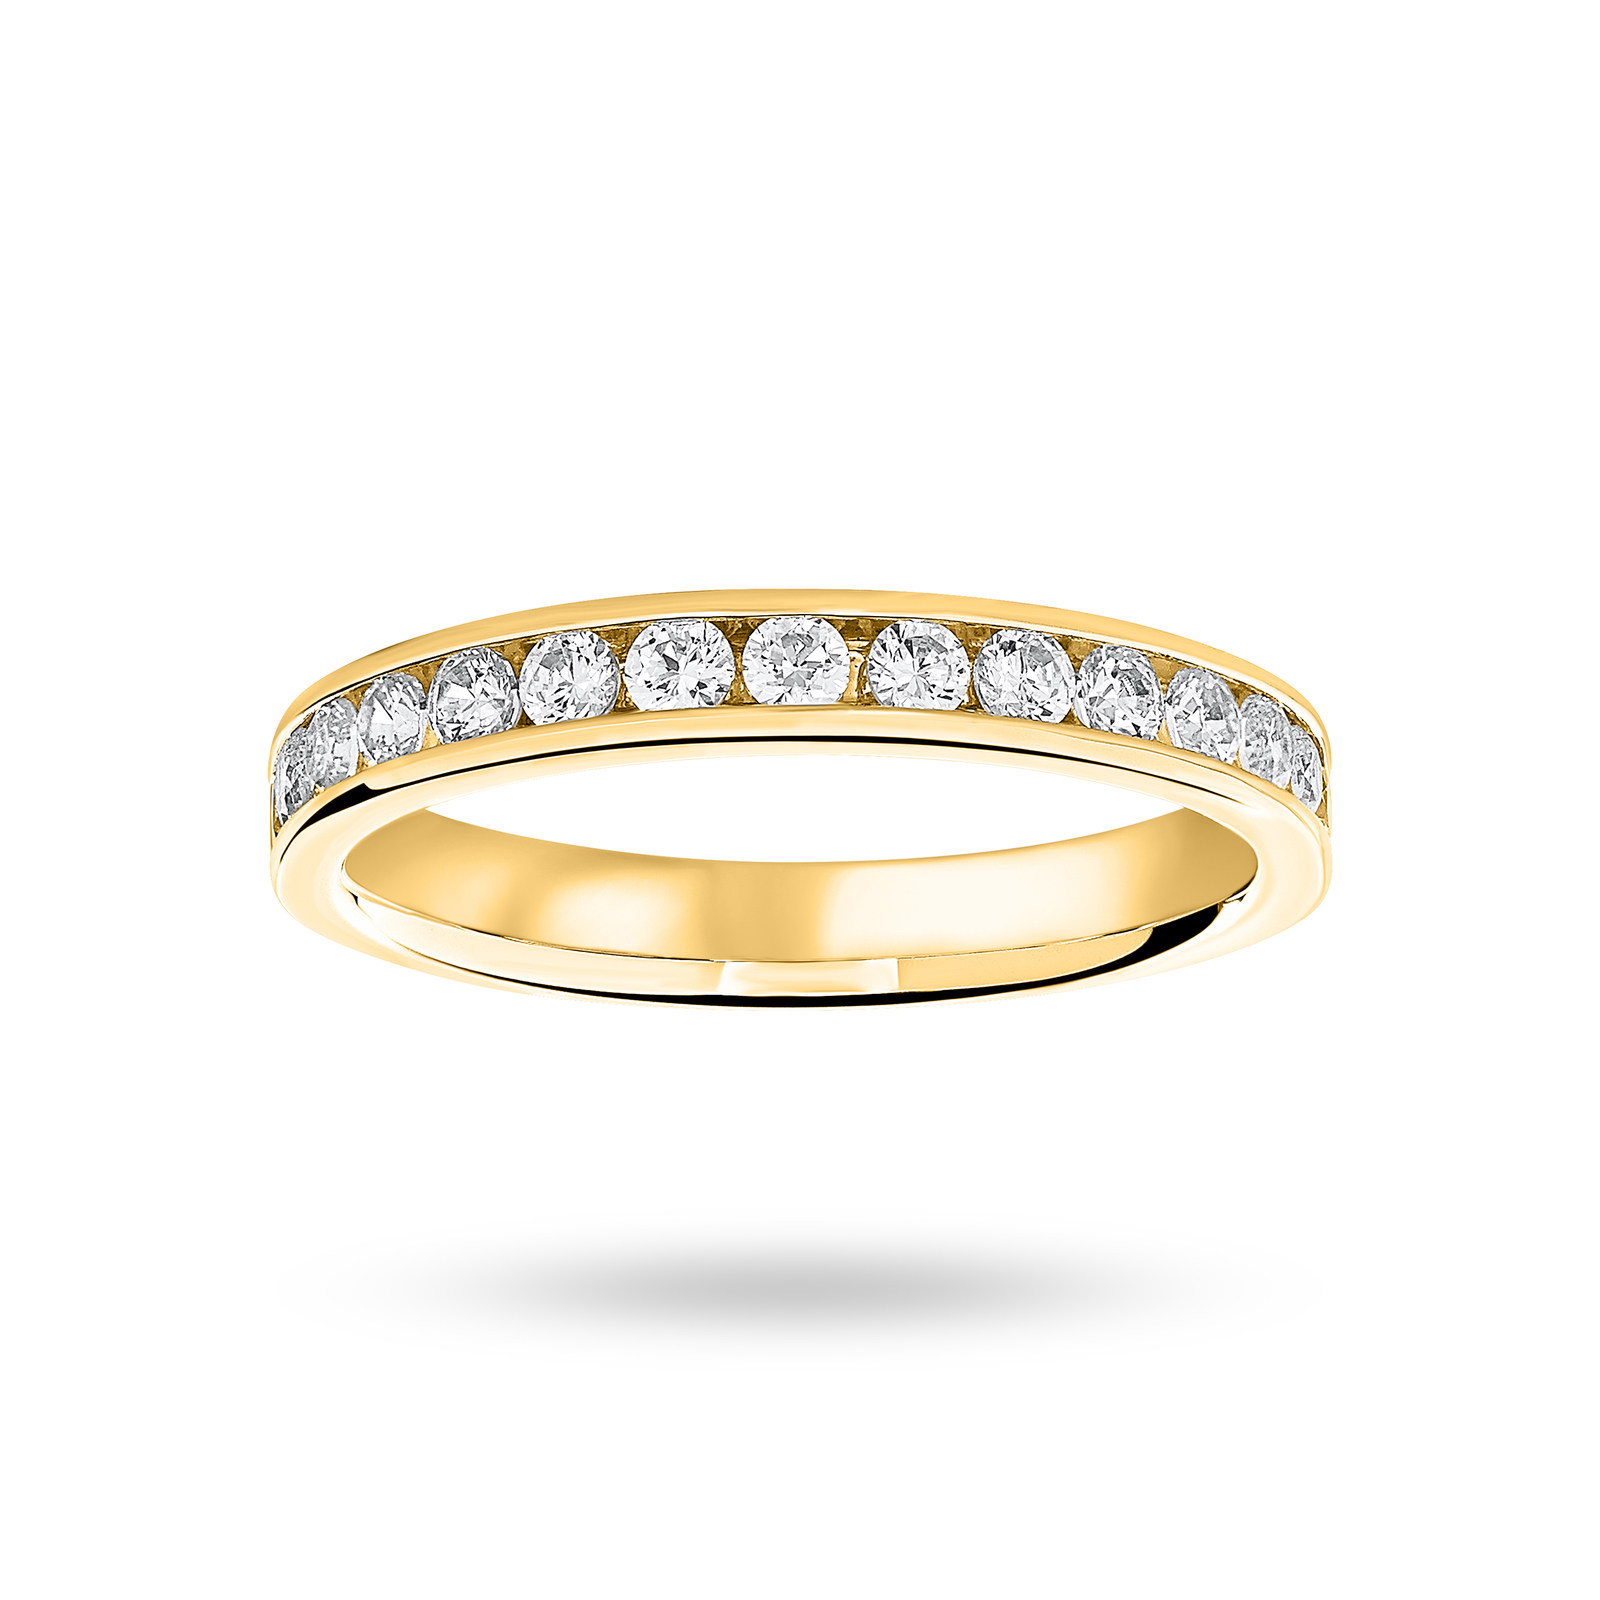 18 Carat Yellow Gold 0.50 Carat Brilliant Cut Half Eternity Ring